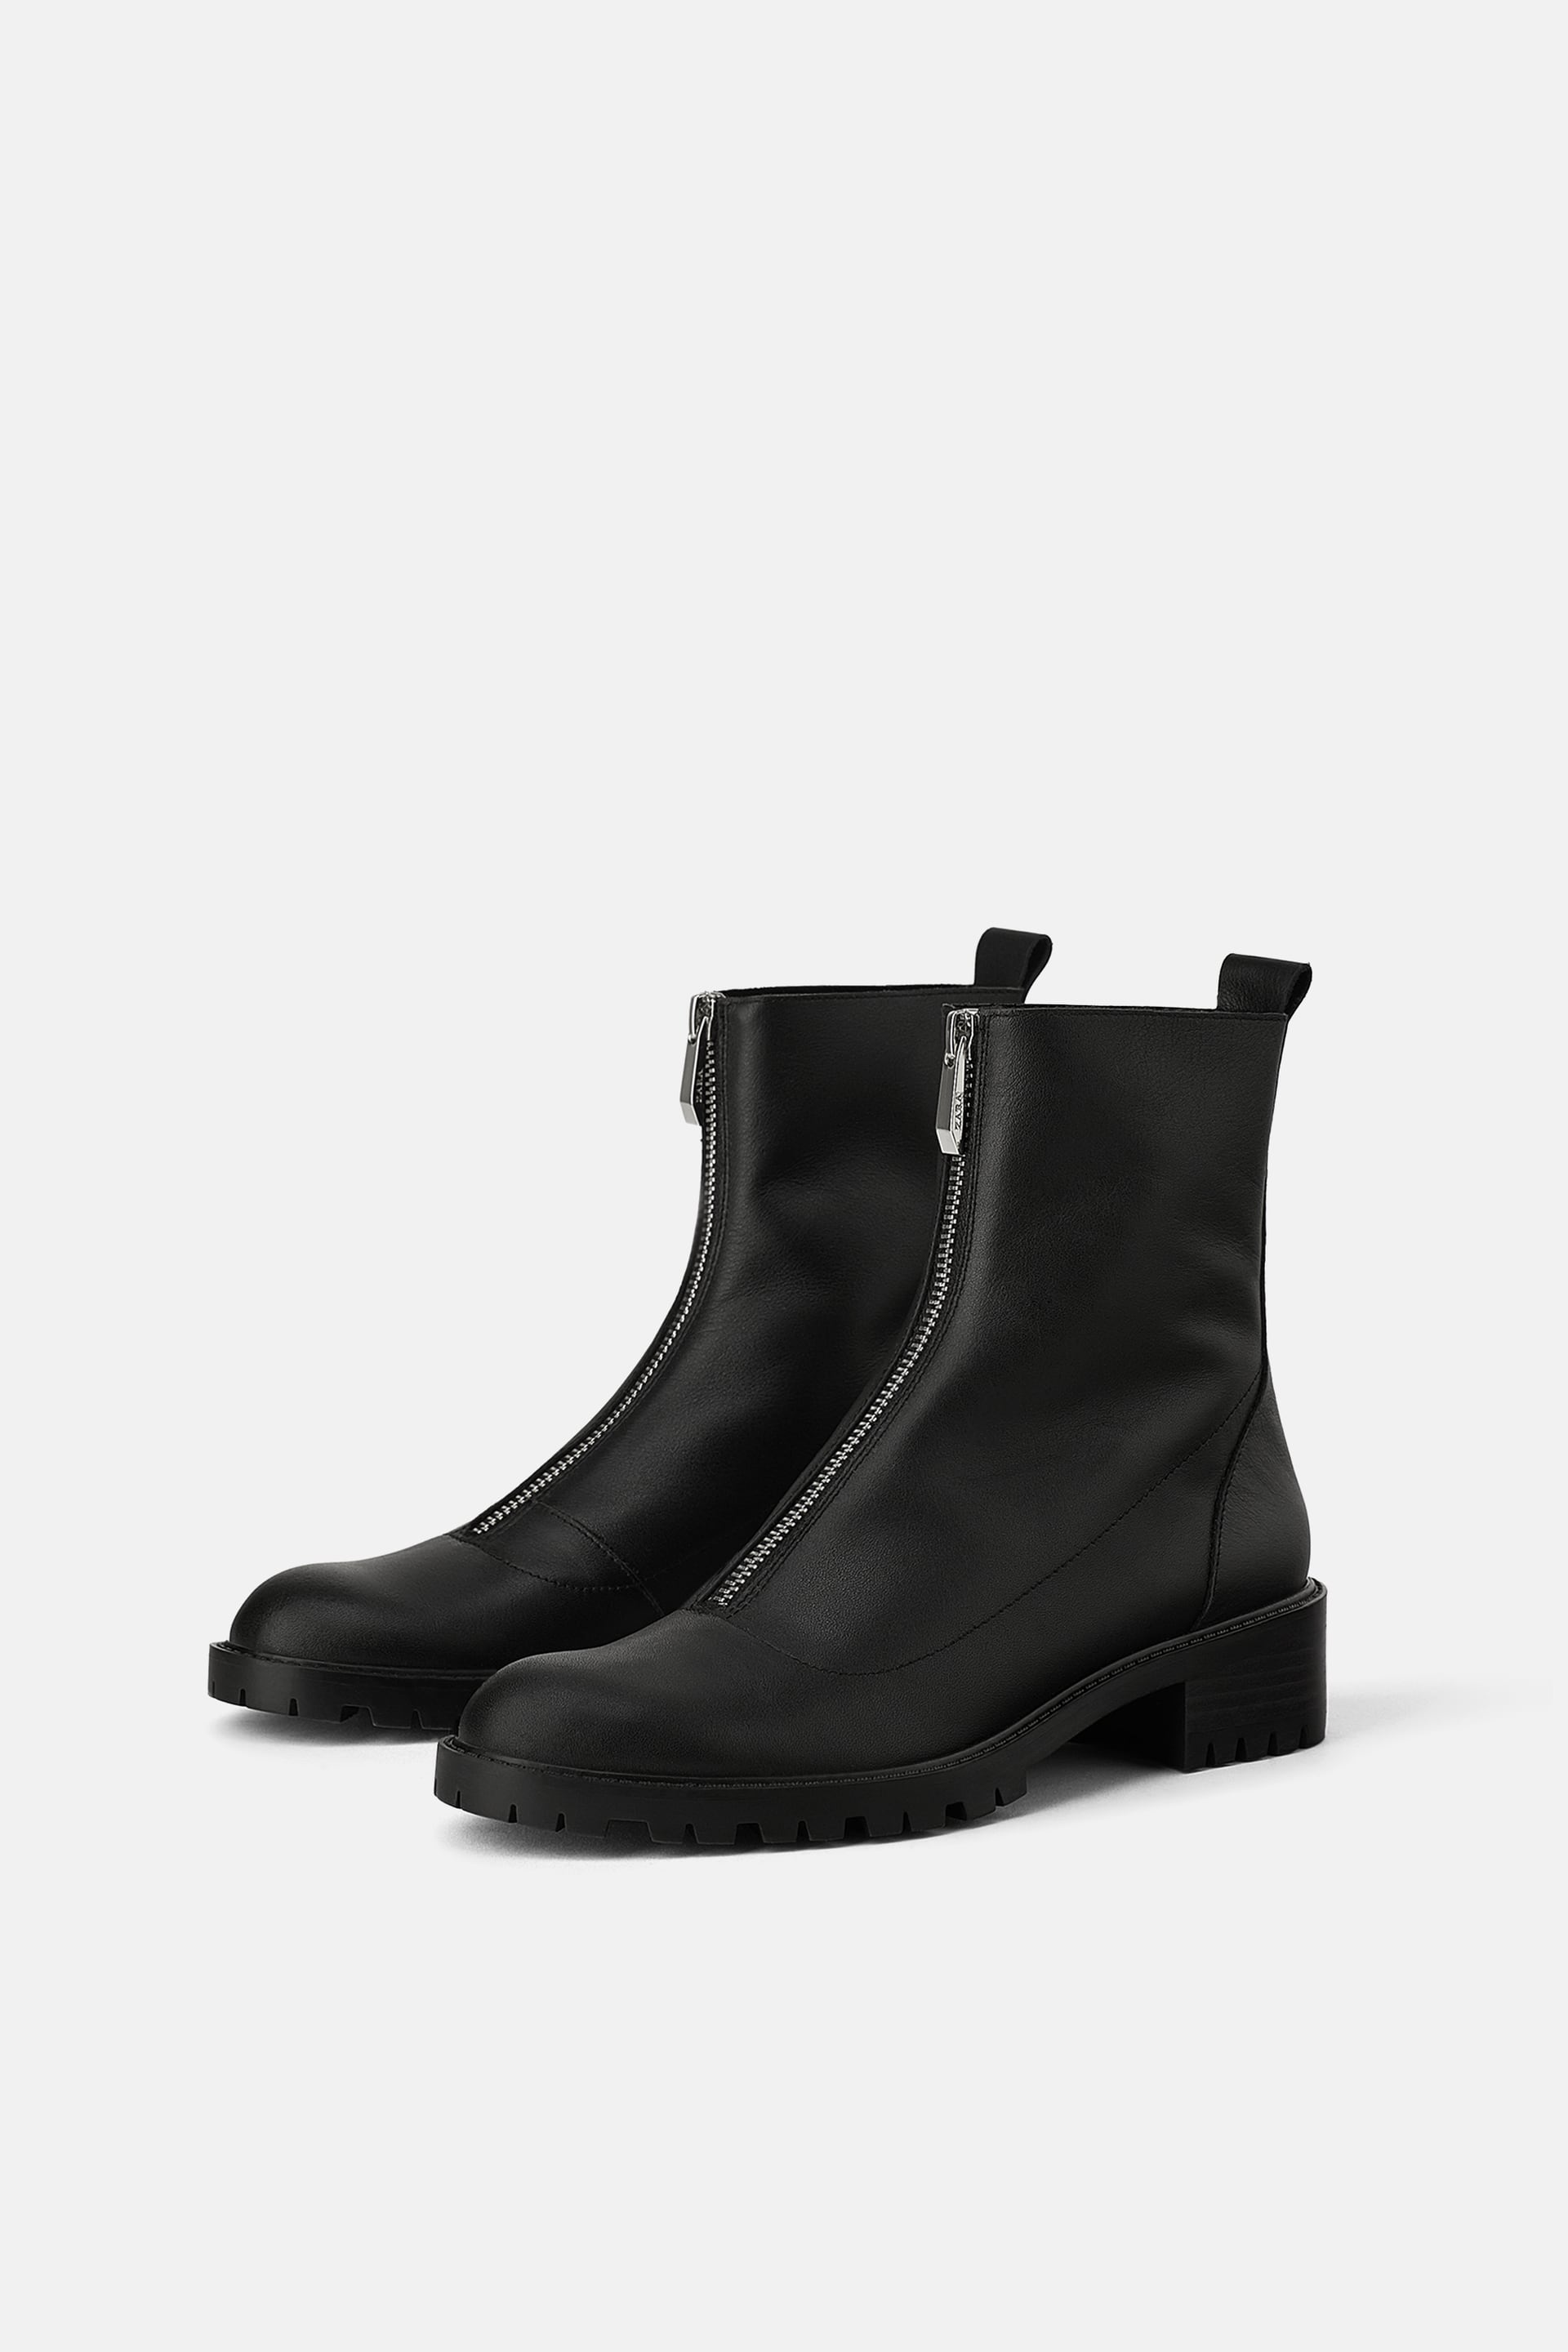 e1d51281 LEATHER ANKLE BOOTS WITH TRACK SOLE - PERSONAL BEST-STORIES-WOMAN ...